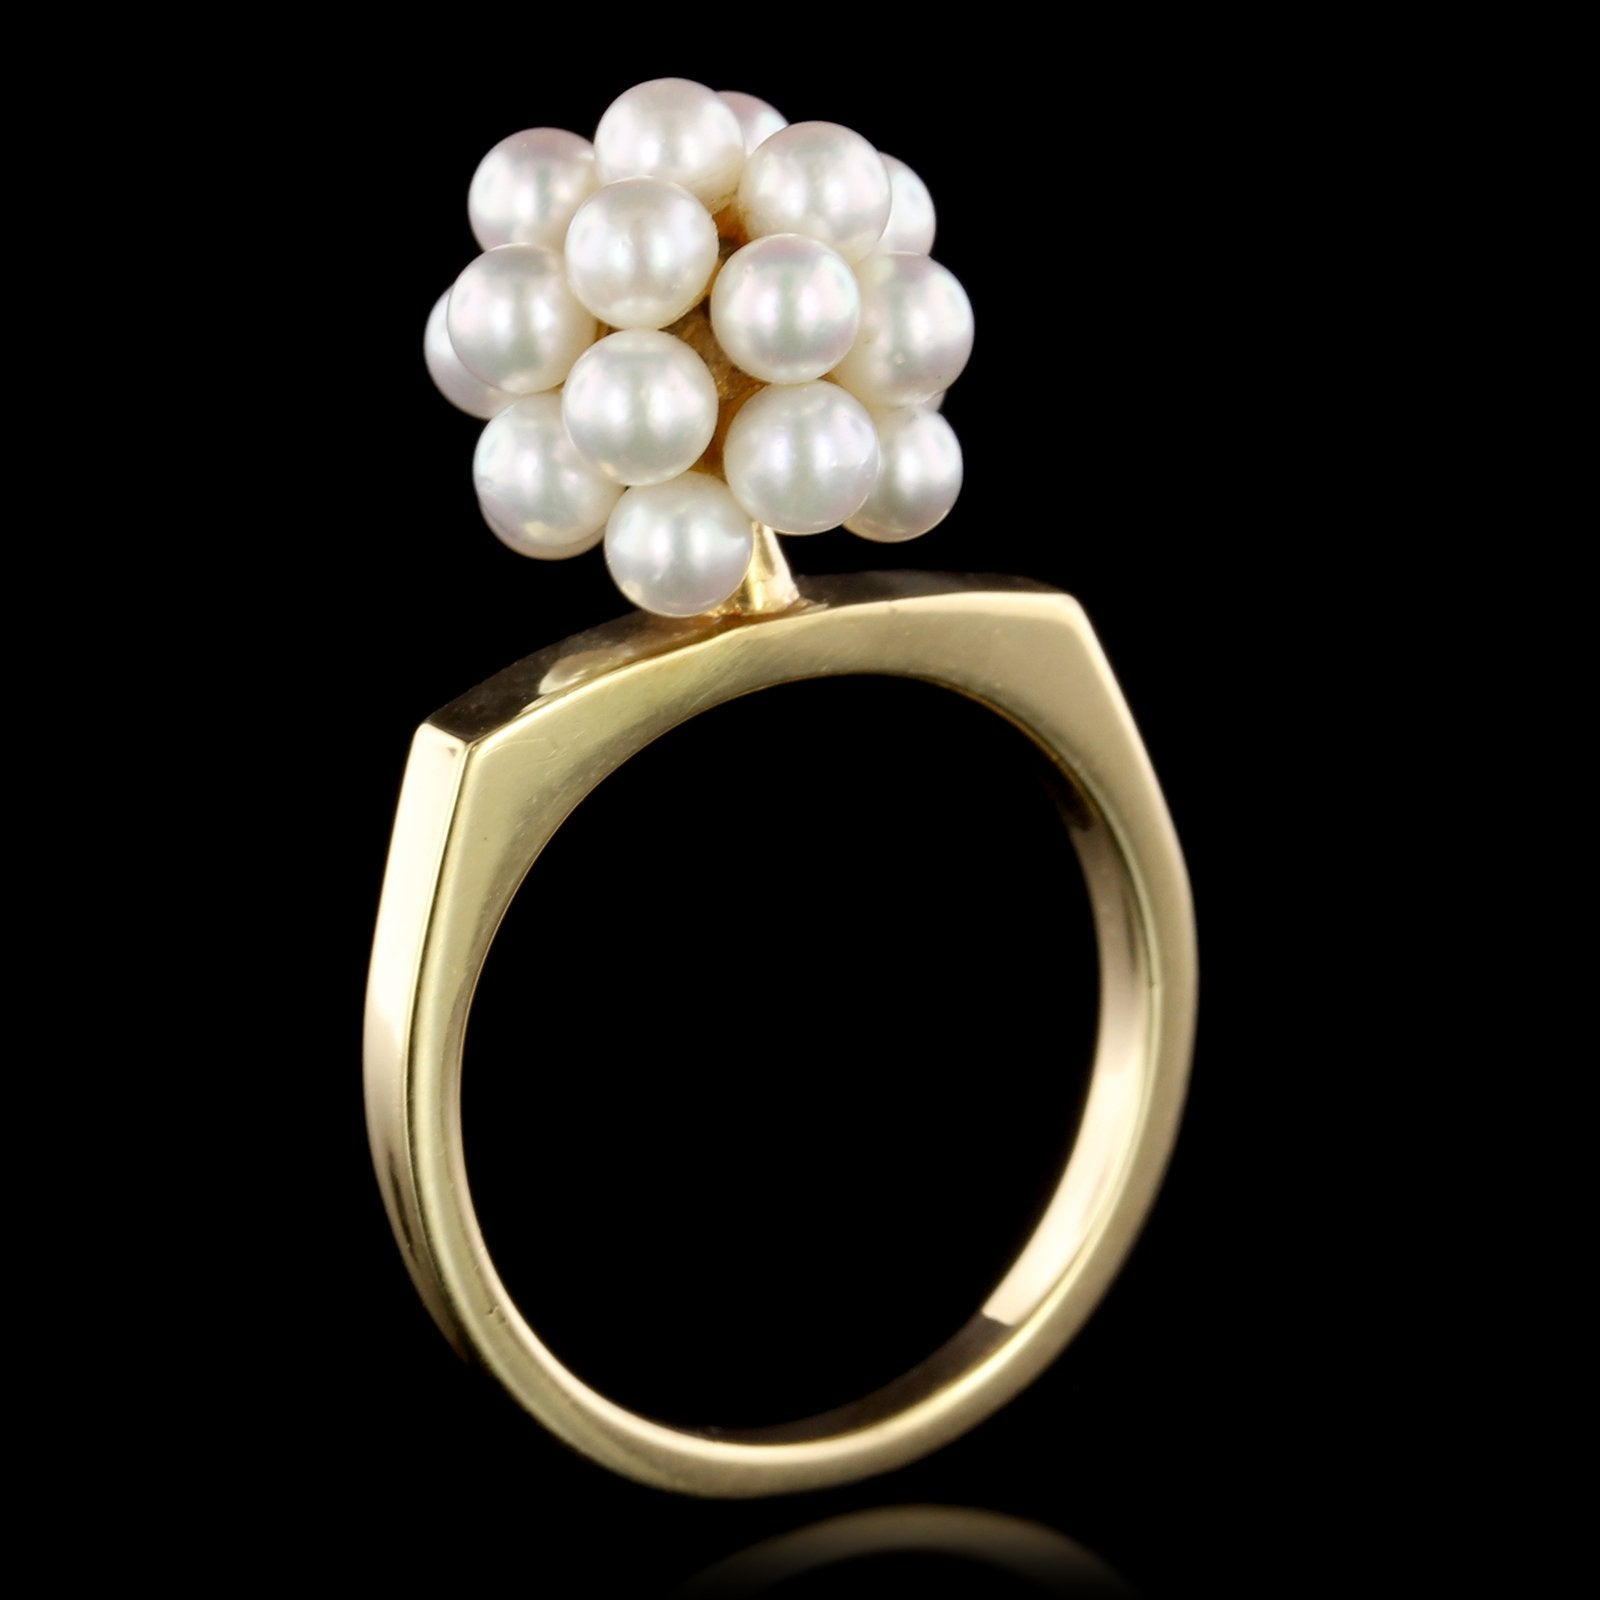 Vintage Mikimoto Cultured Pearl Ring